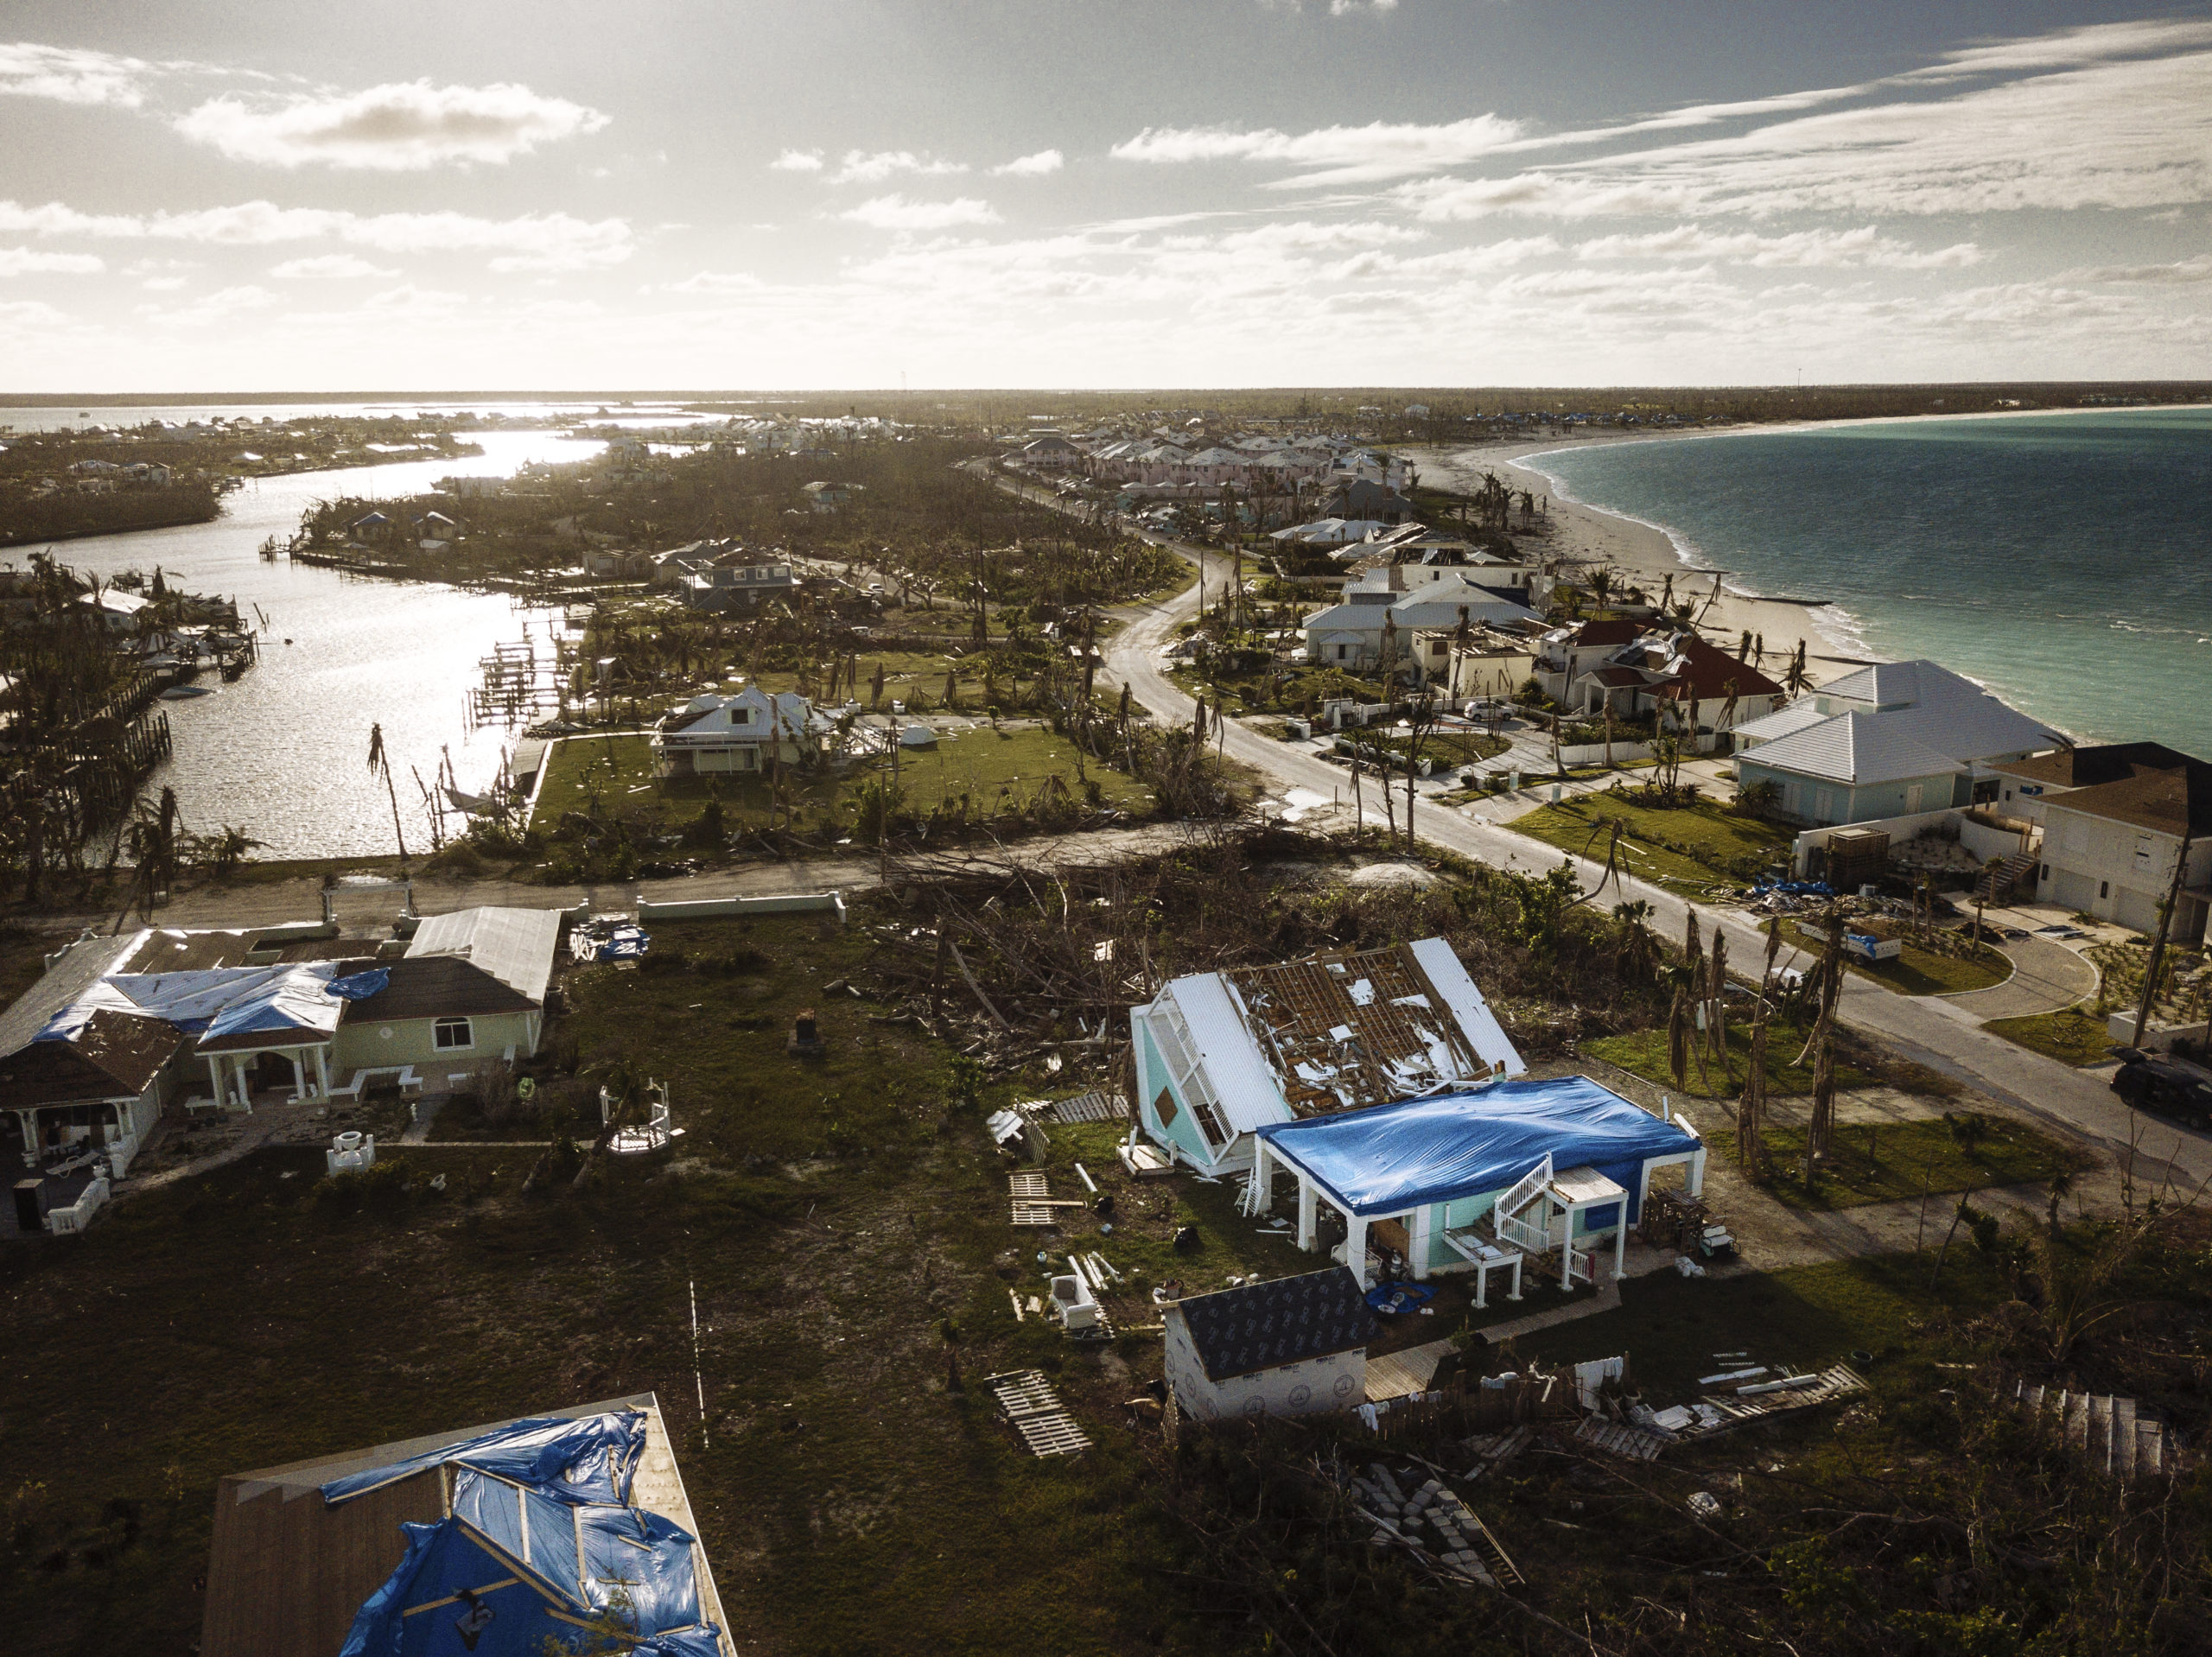 A house can be seen flipped over after being ripped in half in a residential area of Abaco. Two months following the landfall of a powerful category five hurricane in the Bahamas in late September 2019, entire neighbourhoods are still destroyed in affected areas. The storm impacted more than 70,000 people throughout the country, and many have already begun the slow process of rebuilding their lives. ©Muse Mohammed